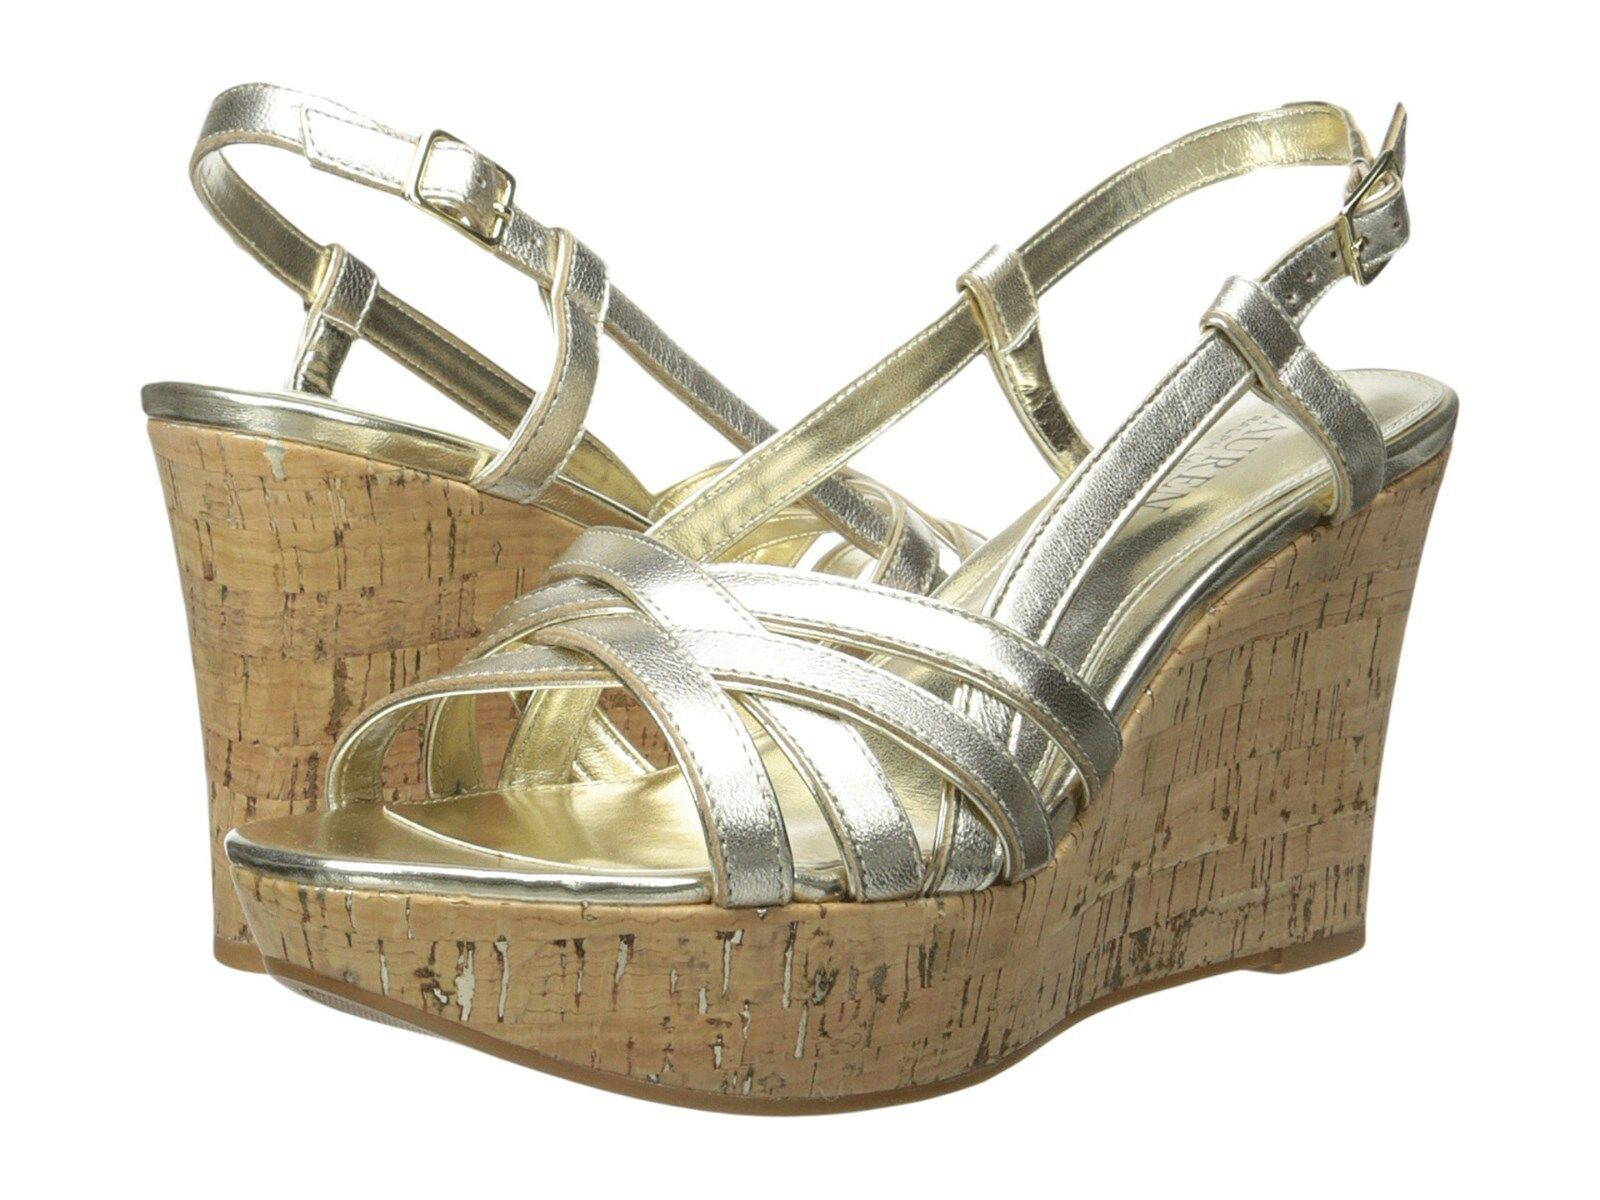 RALPH LAUREN QUAYLIN PLATINO METALLIC WEDGE SANDAL Schuhe MULTISIZES AS292